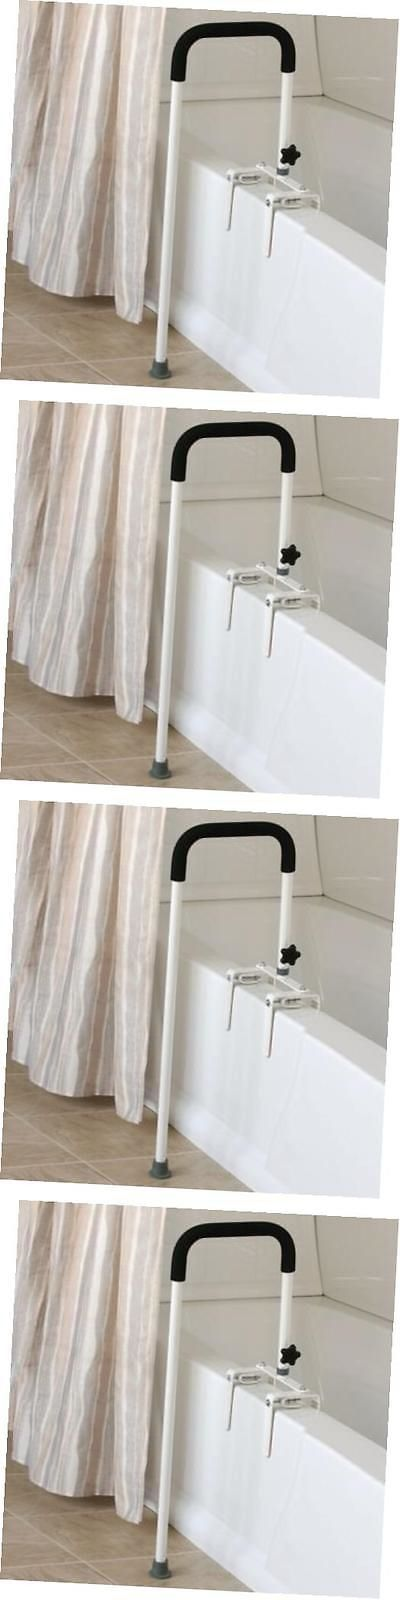 Handles and Rails: Floor To Tub Bath Rail, Curved Grab Bar With 200 Lbs Capacity For Shower Or -> BUY IT NOW ONLY: $130.46 on eBay!